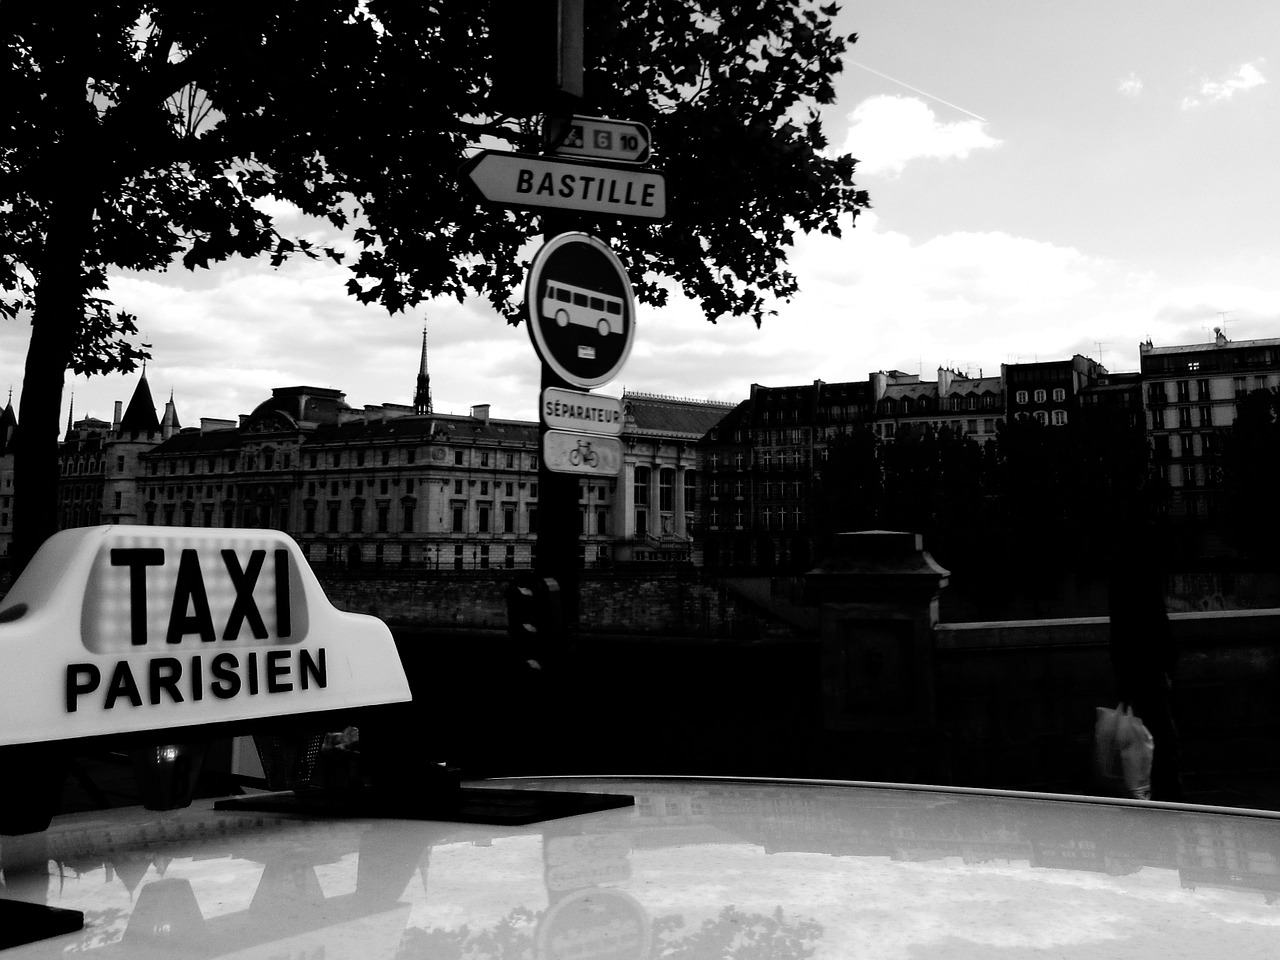 Transport en taxi conventionné : quand faut-il obtenir un accord préalable ?